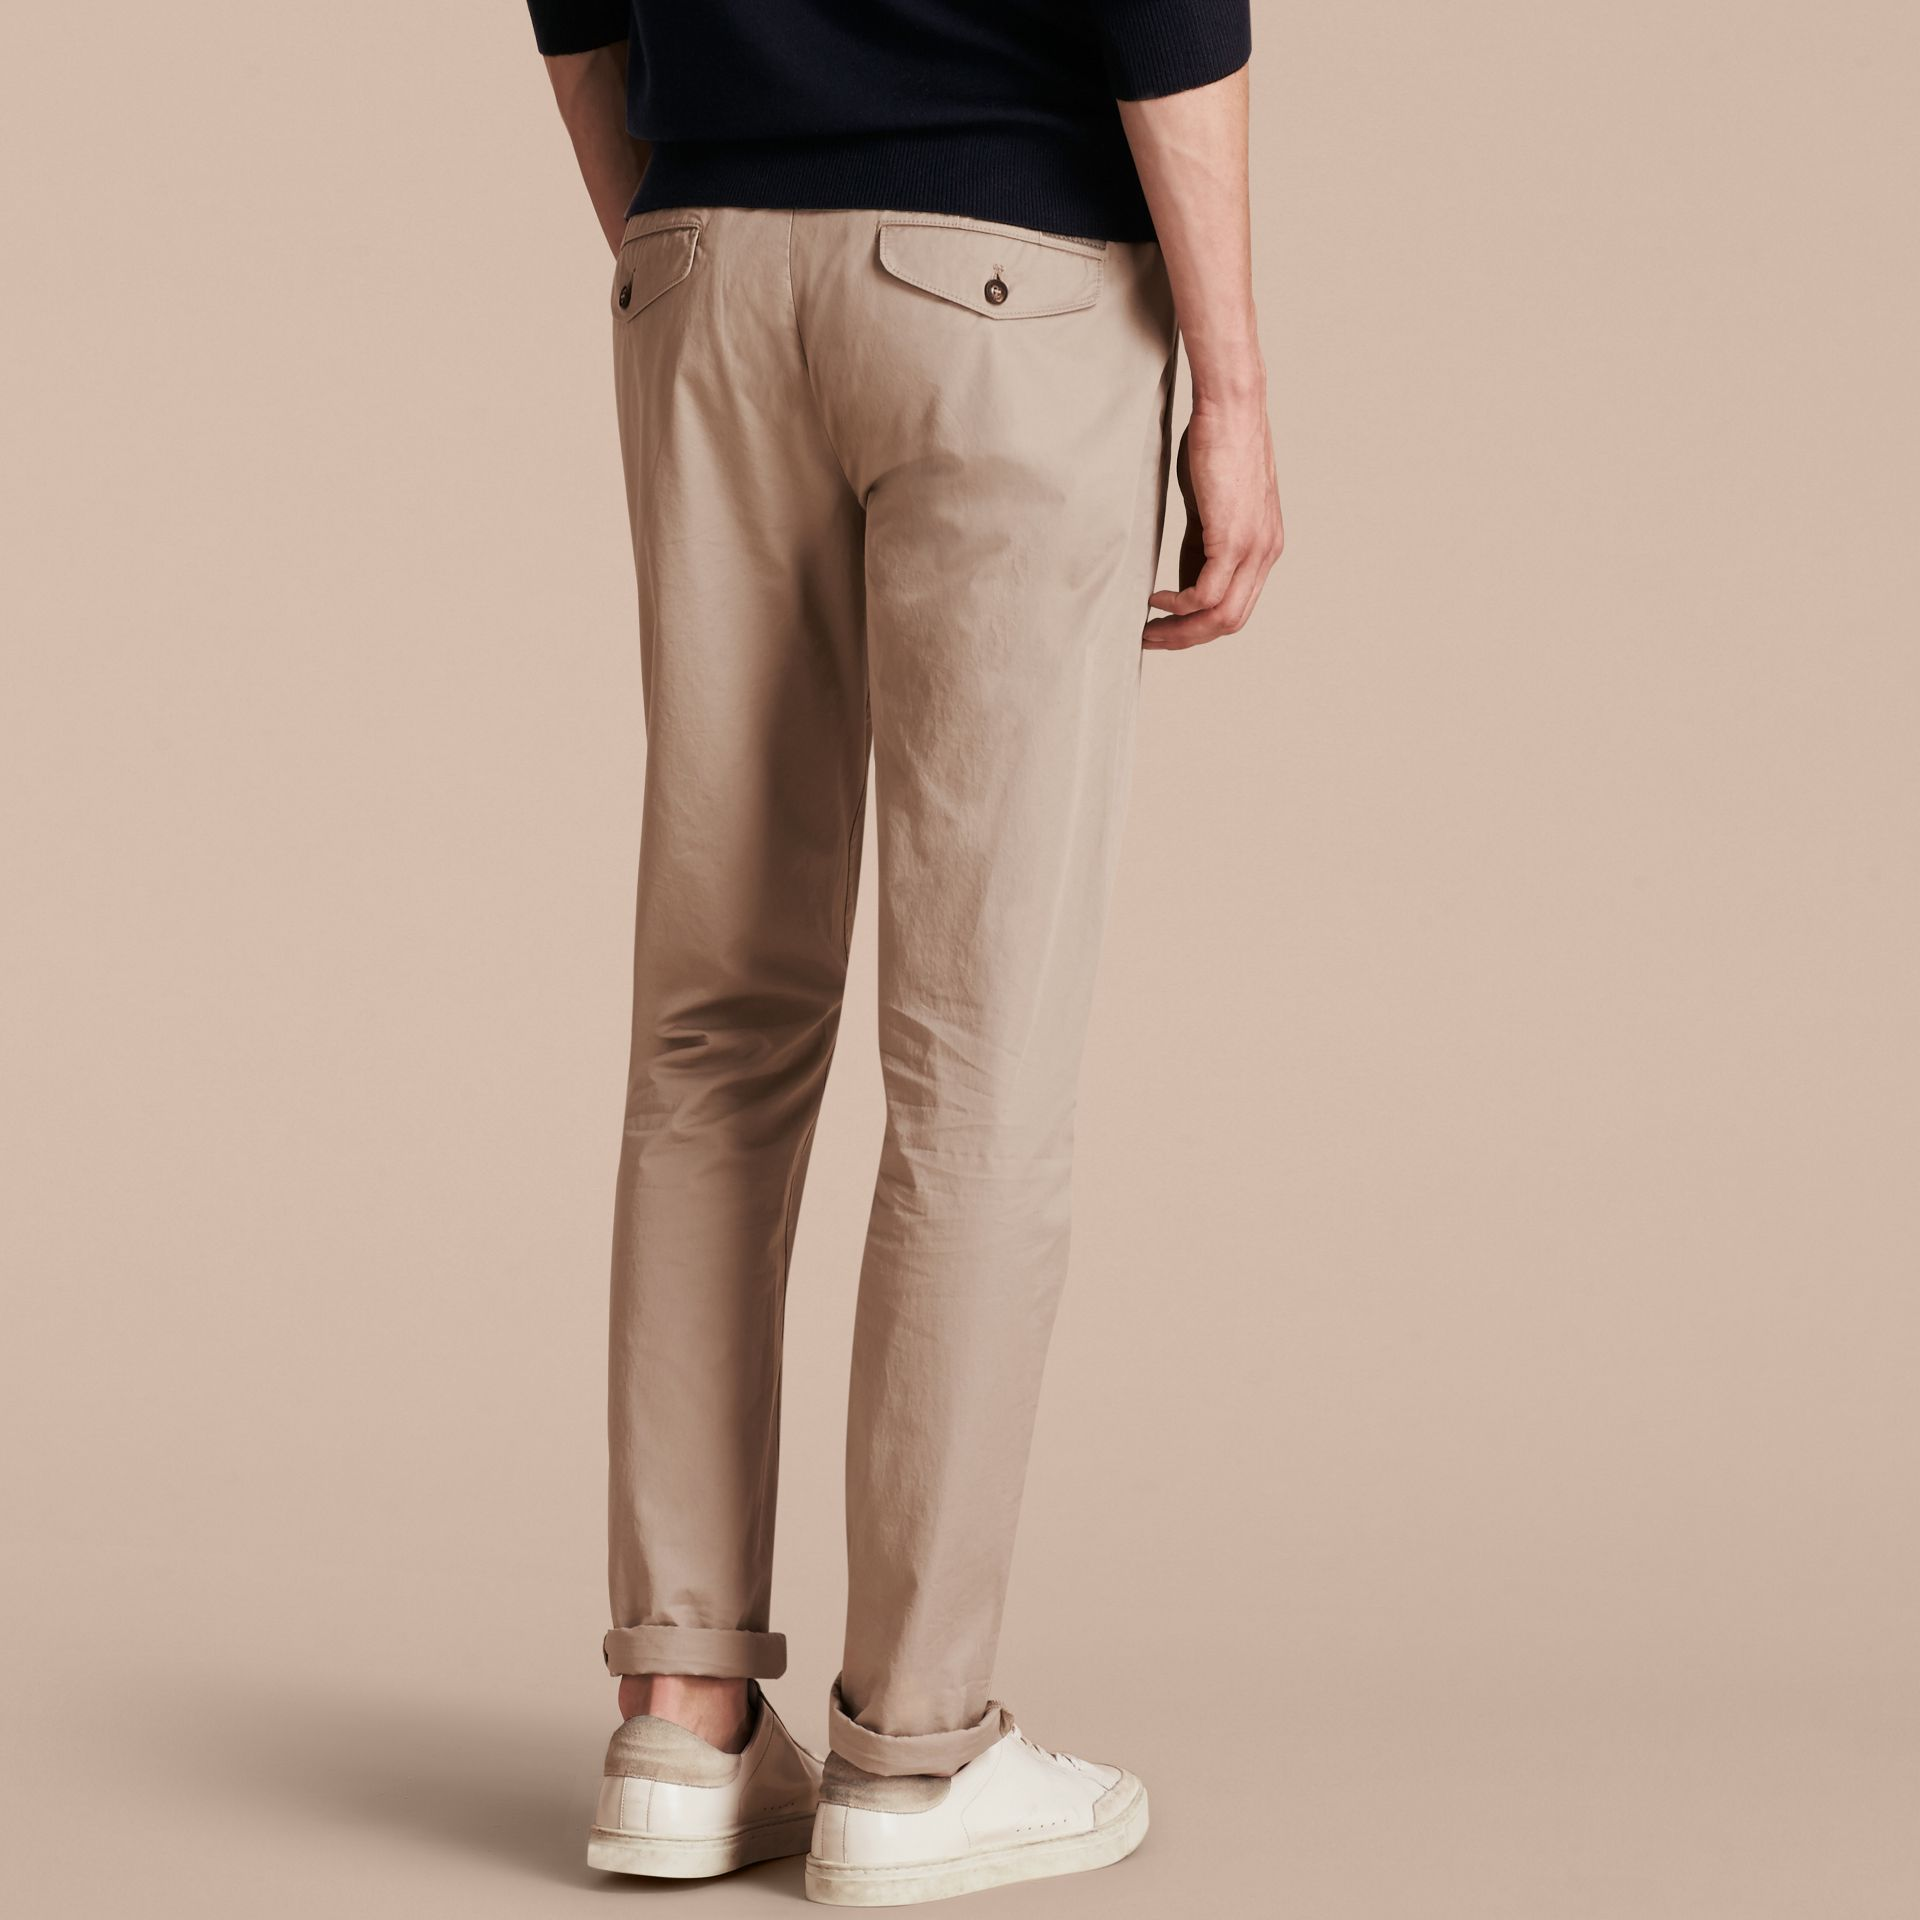 Slim Fit Cotton Chinos in Taupe - Men | Burberry - gallery image 3